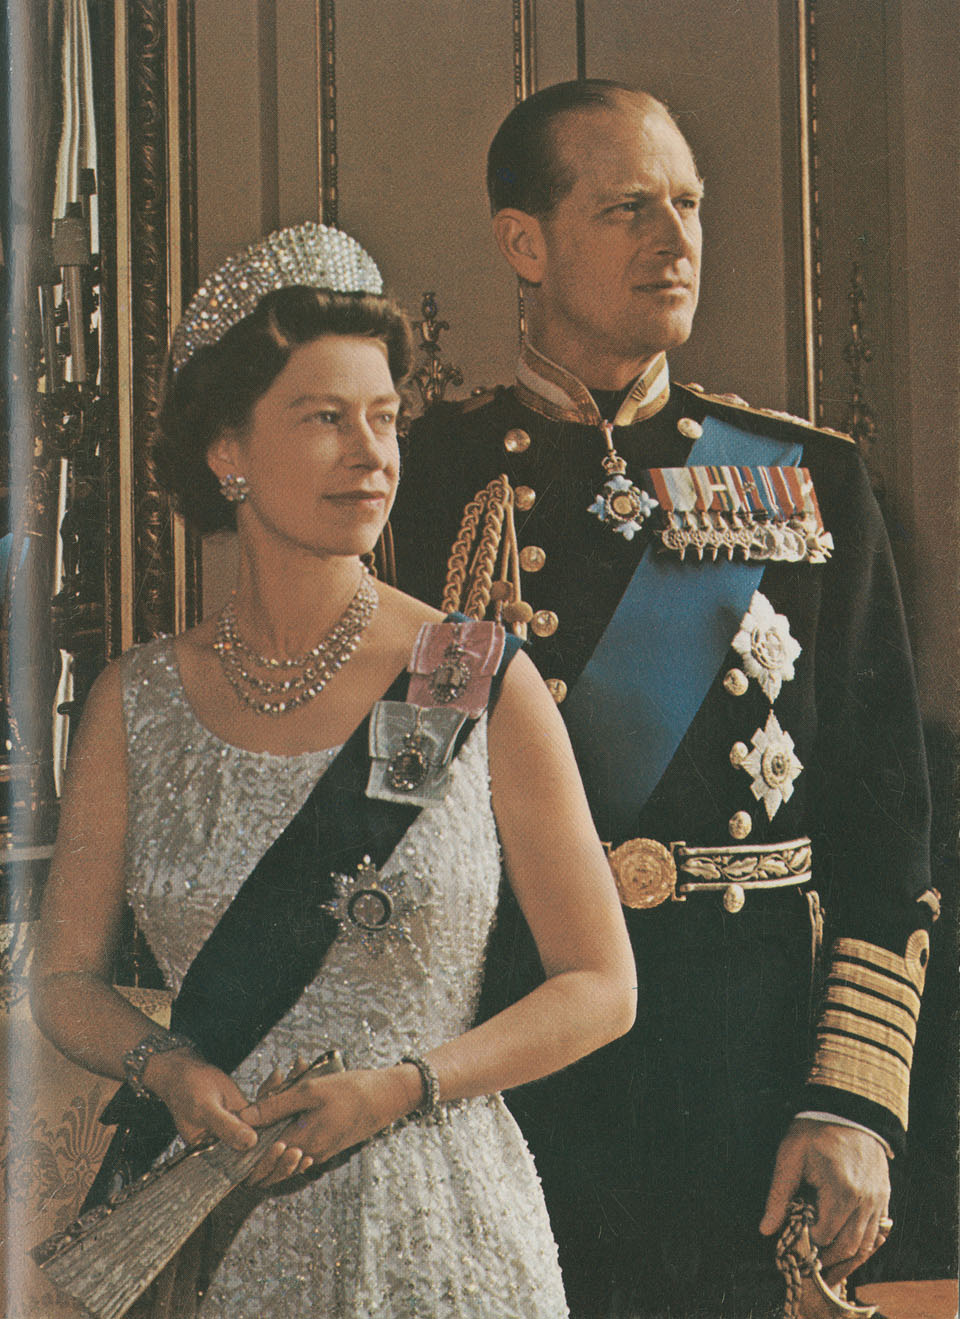 HM Queen Elizabeth and HRH Prince Philip